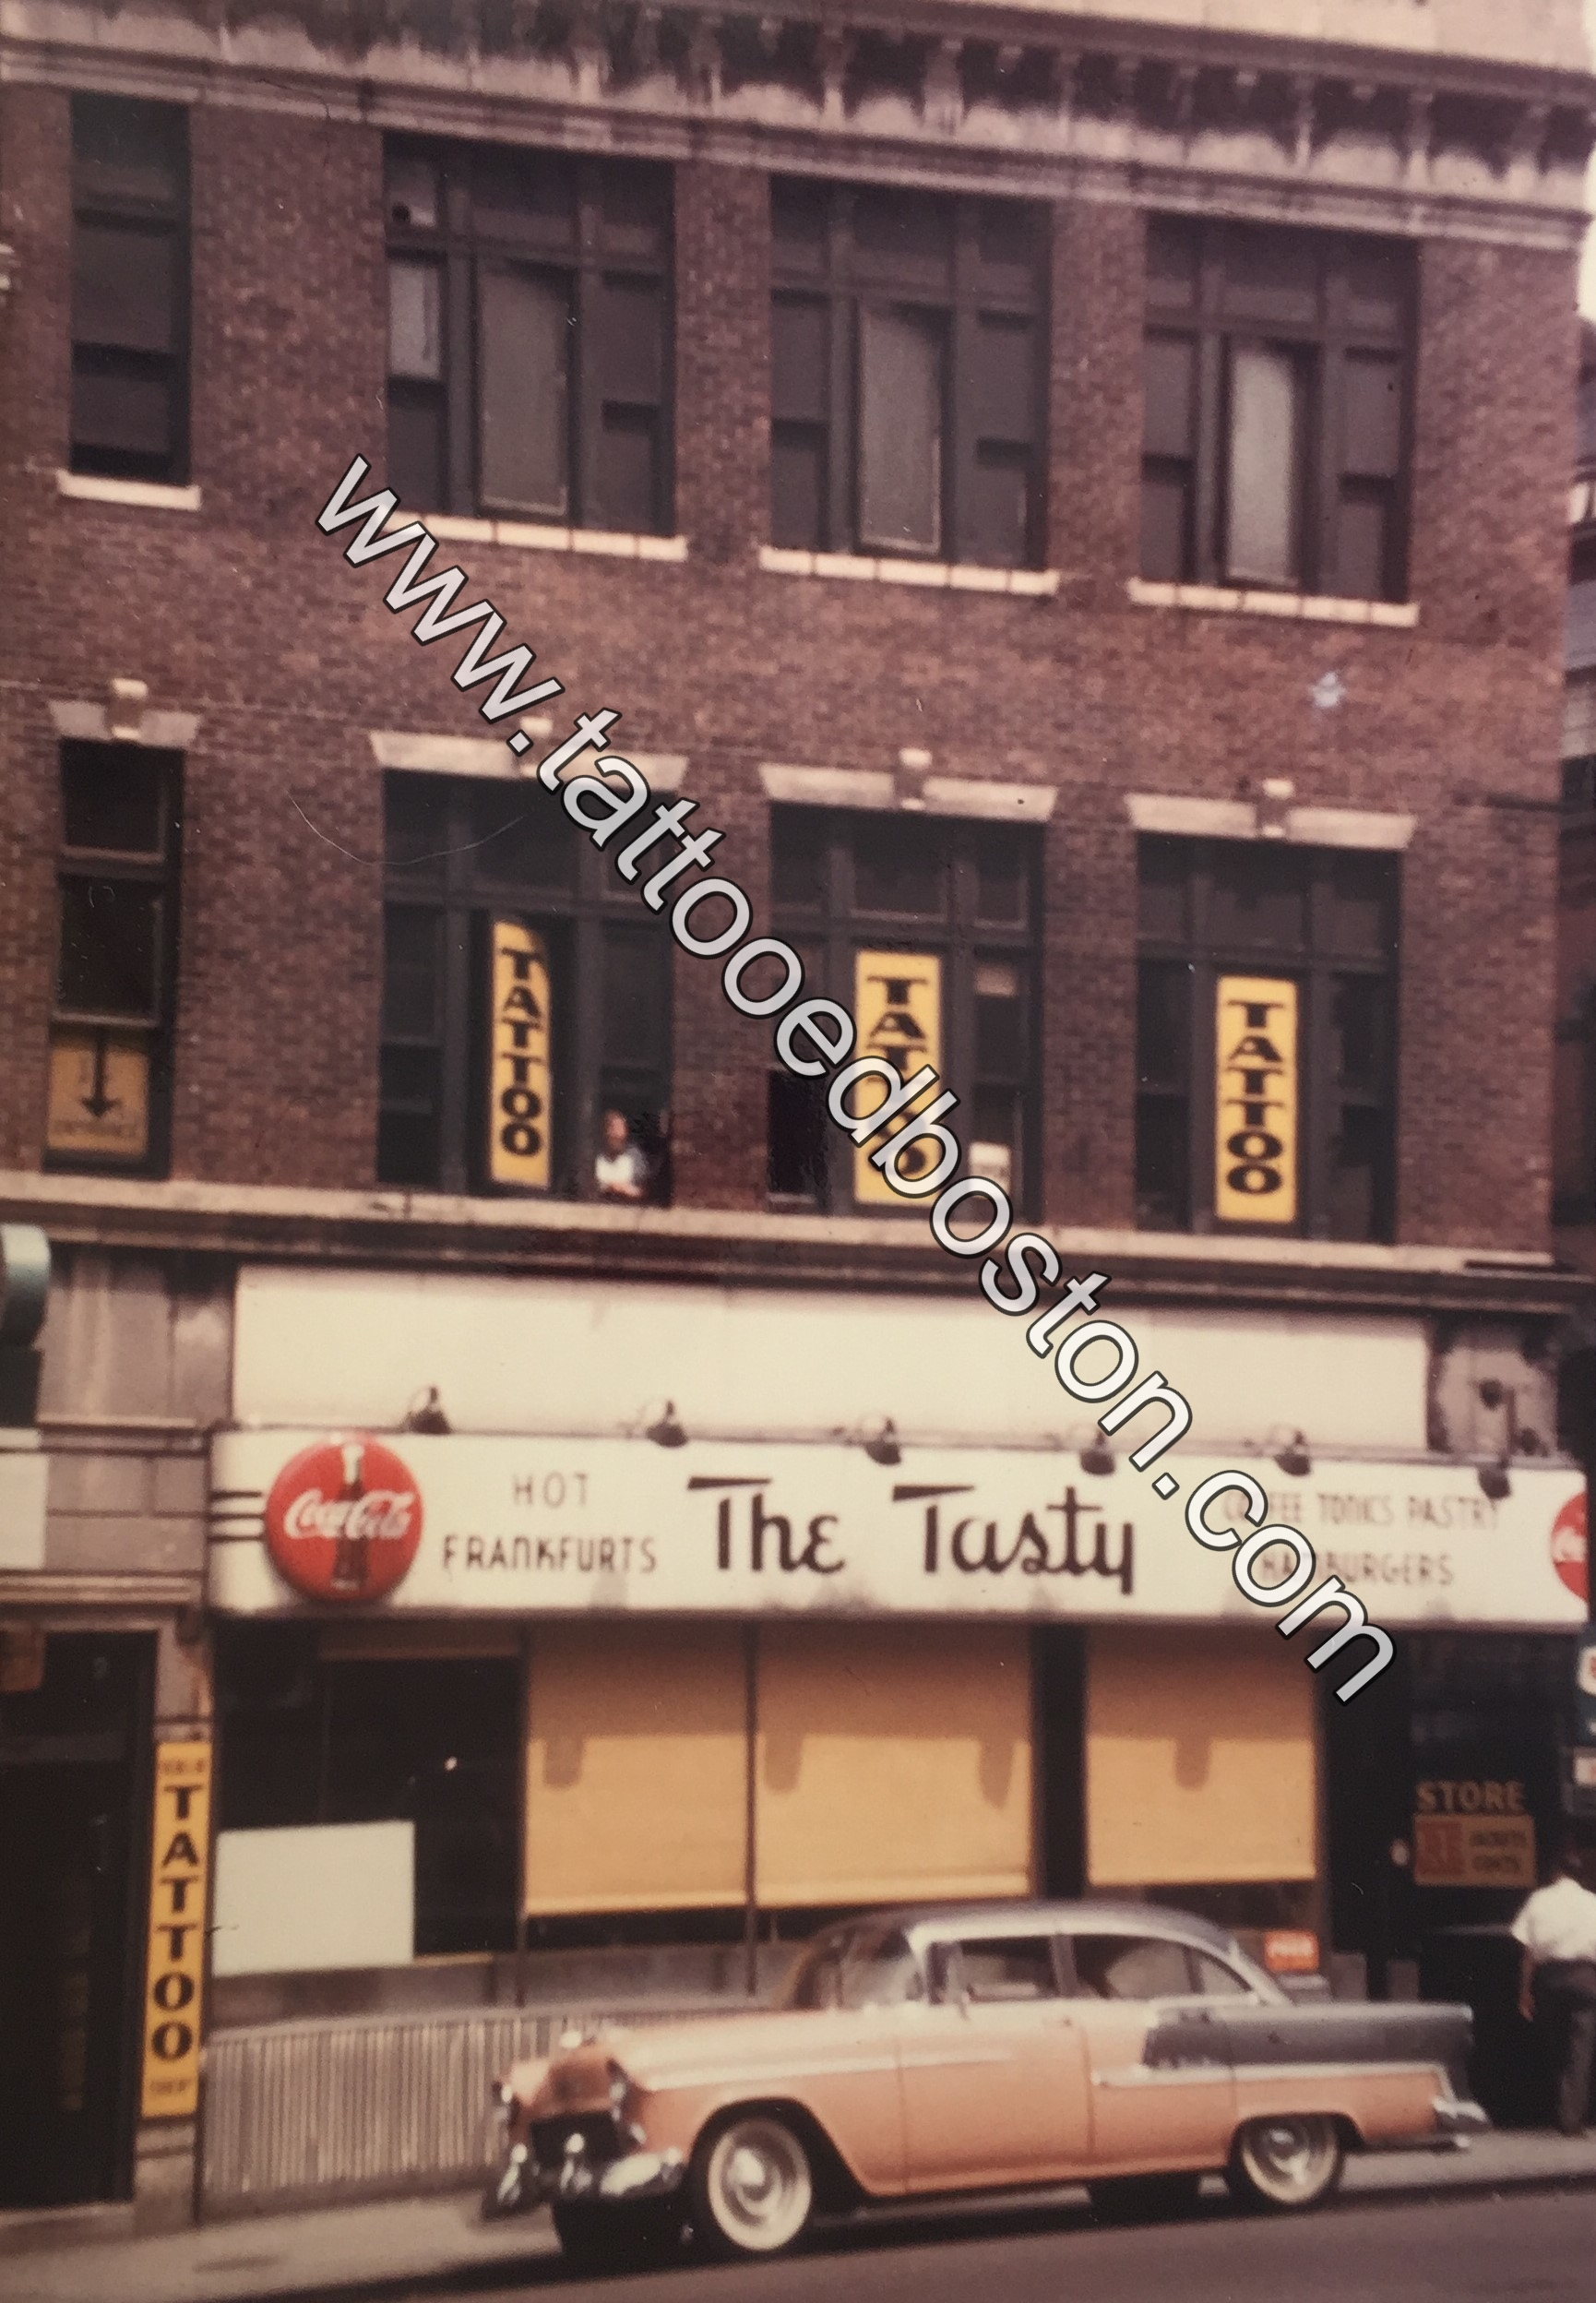 Lefty Liberty's Tattoo Shop at 49 Scollay Square, Boston, ca. 1955